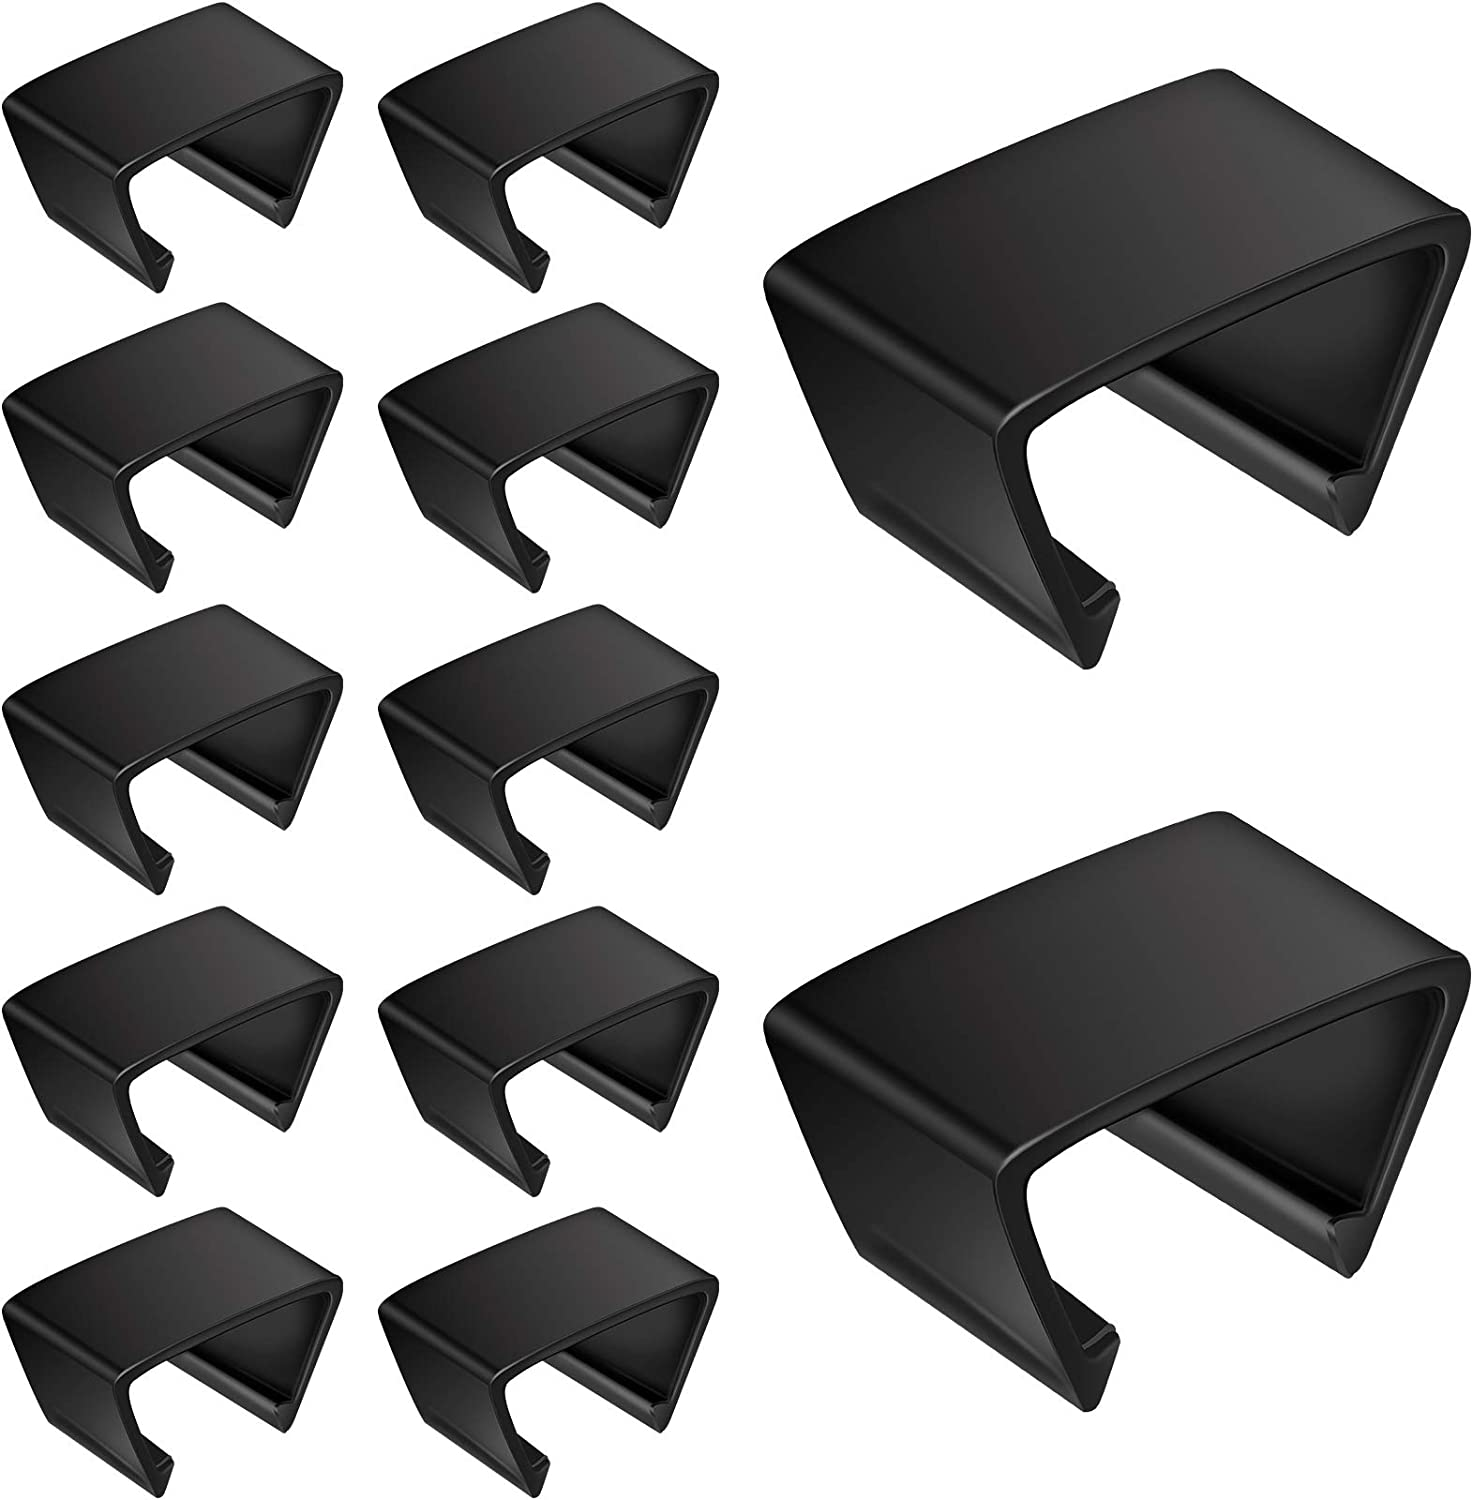 10 Pieces Outdoor Furniture Clips Patio Sofa Clips Rattan Furniture Clamps Wicker Chair Fasteners Connect The Sectional or Module Outdoor Couch Patio Furniture Supplies